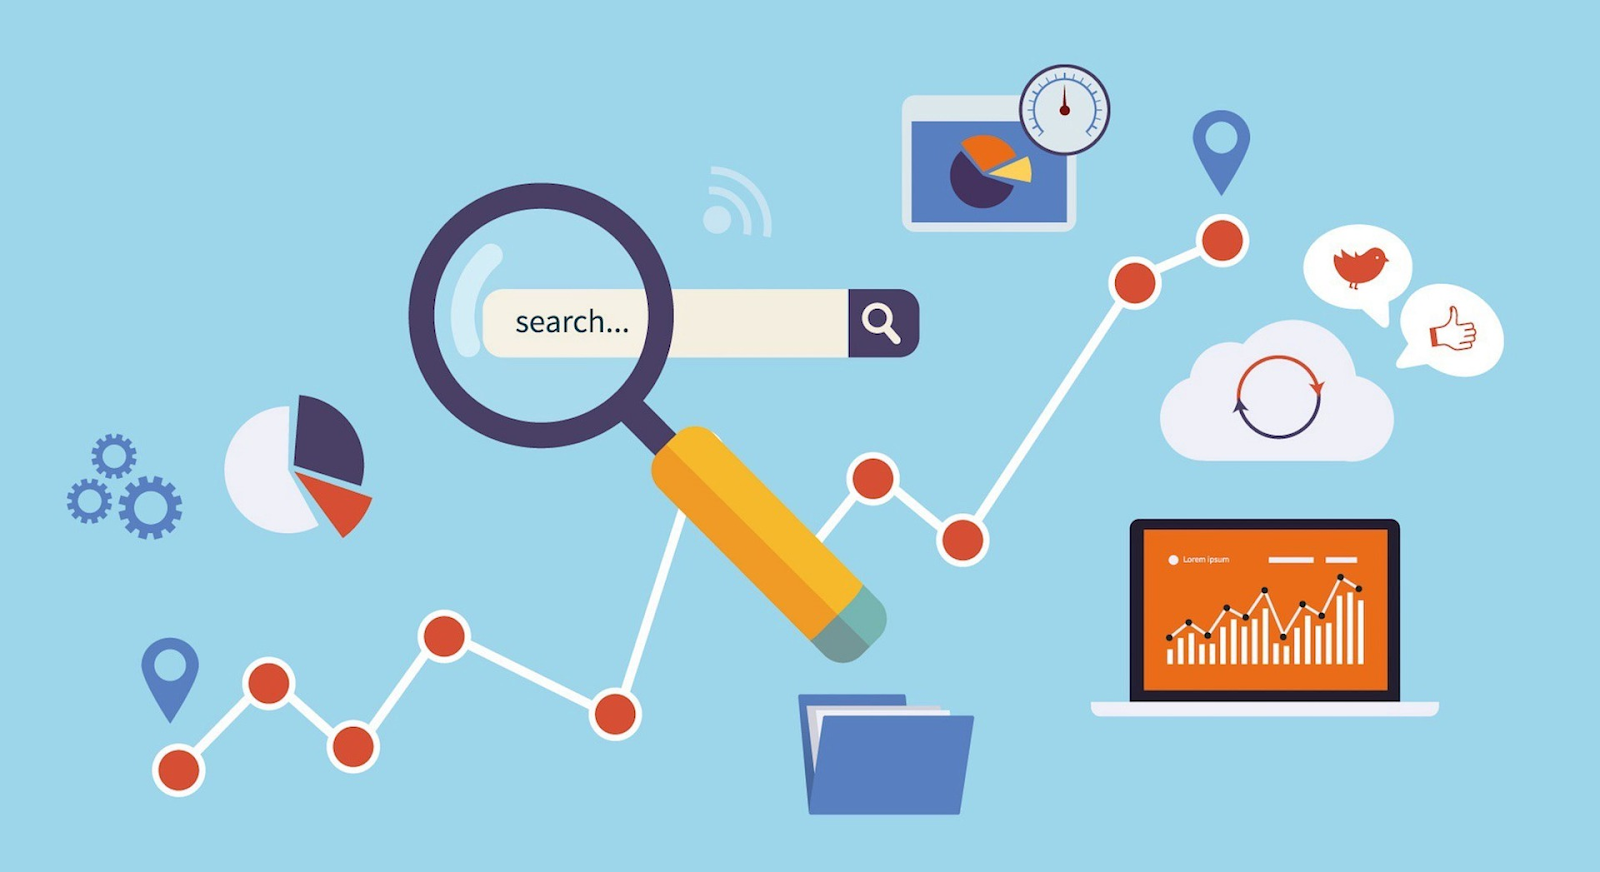 How do the HubSpot SEO features compare to other platforms?